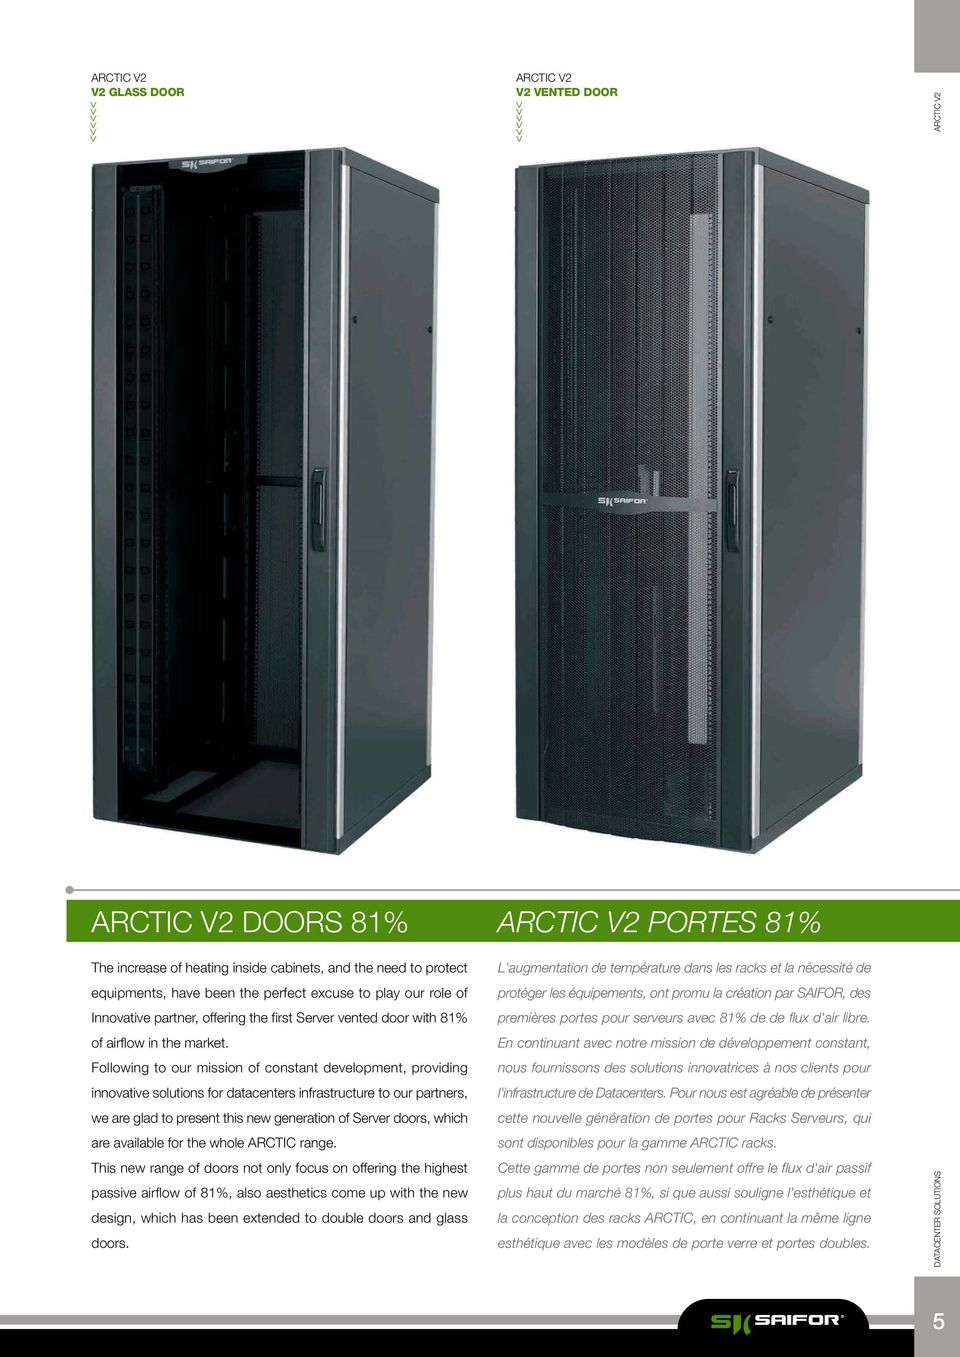 Following to our mission of constant development, providing innovative solutions for datacenters infrastructure to our partners, we are glad to present this new generation of Server doors, which are